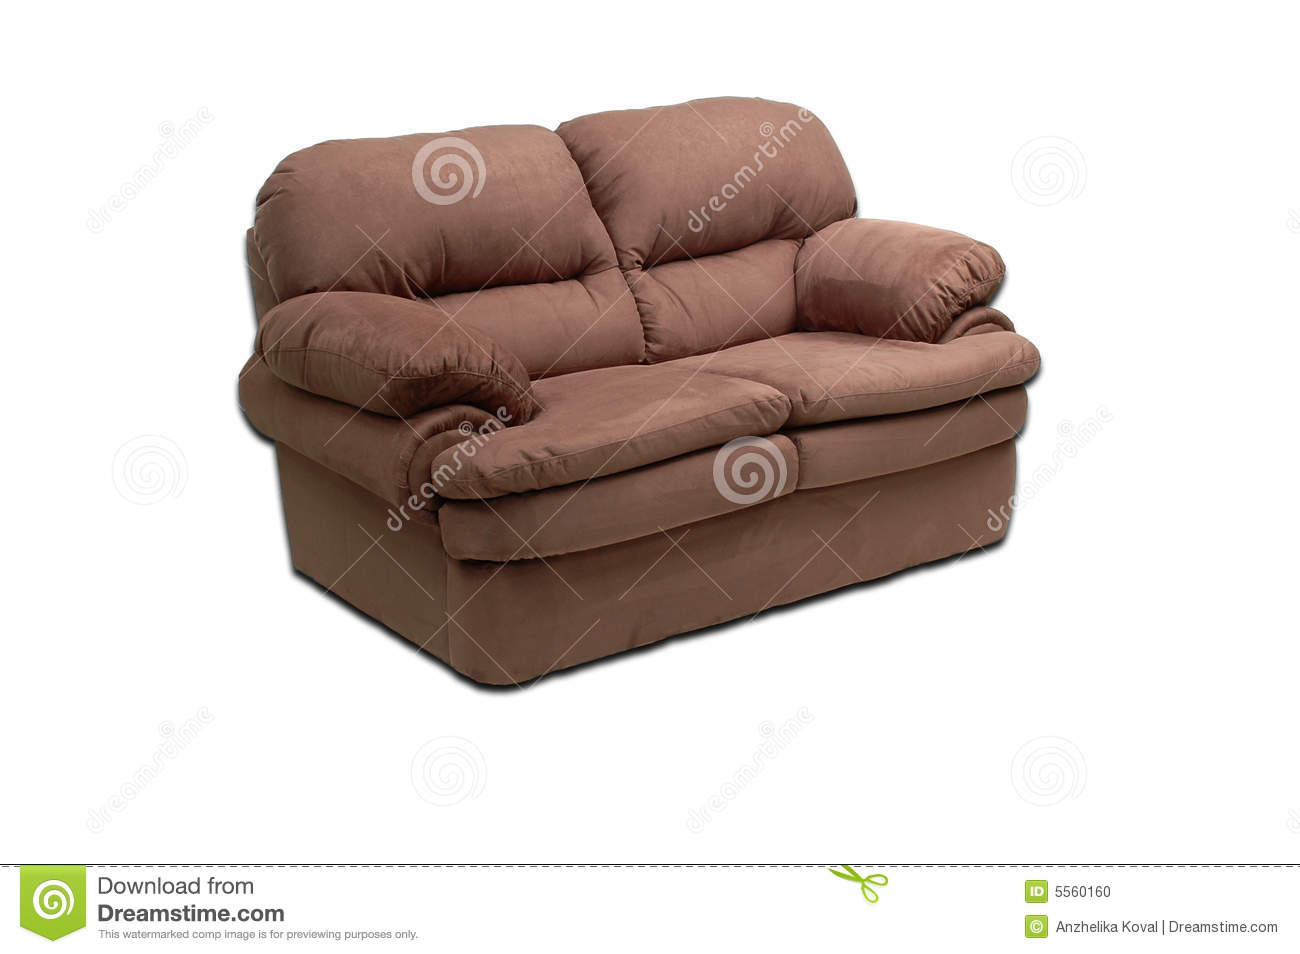 Enjoyable Suede Sofa For Two Stock Photo Image Of Home Soft Leather Machost Co Dining Chair Design Ideas Machostcouk